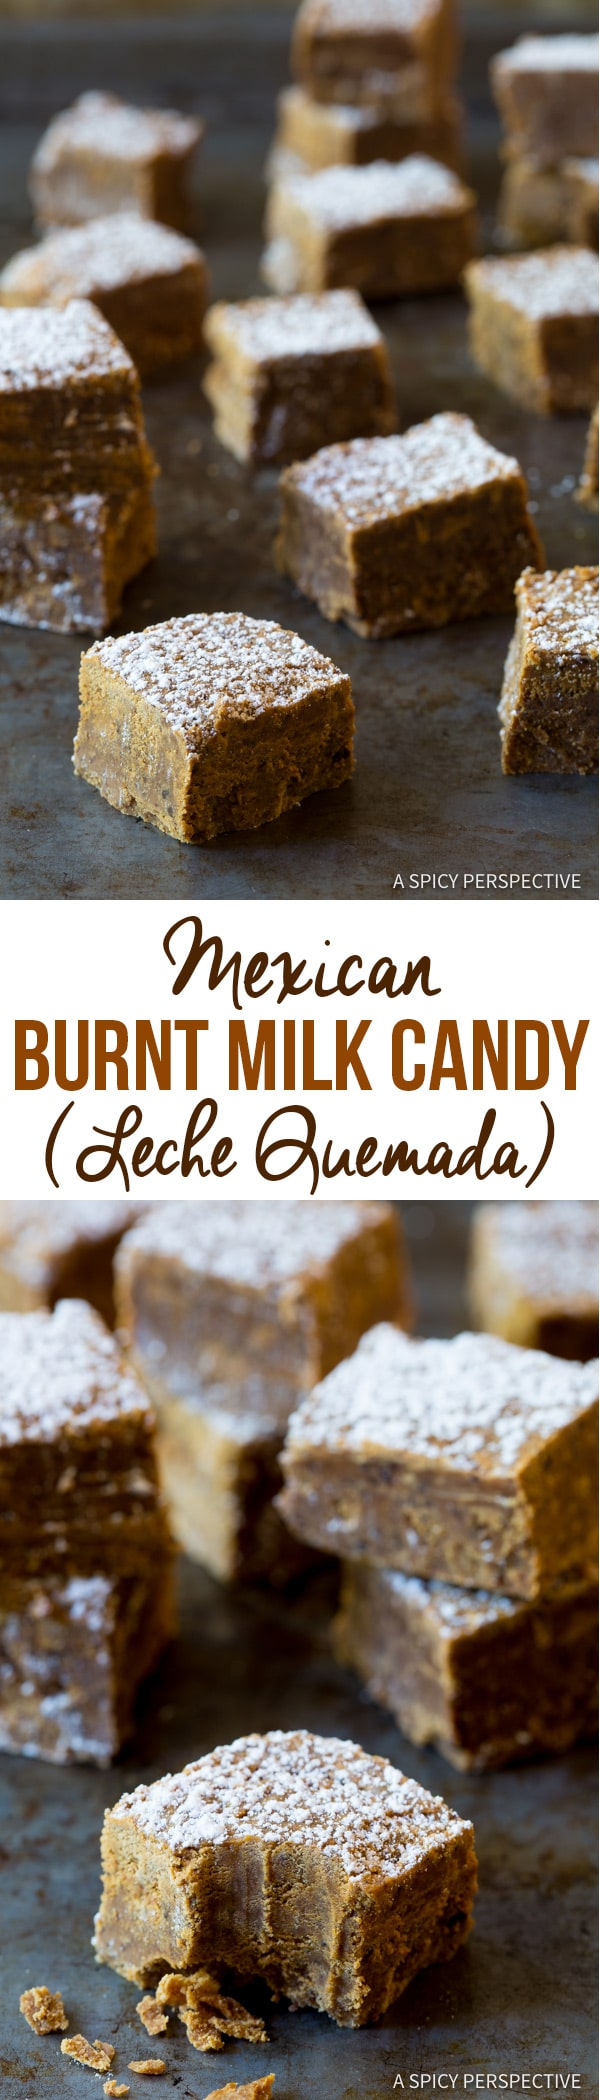 Mexican Burnt Milk Candy (Leche Quemada) Recipe | ASpicyPerspective.com